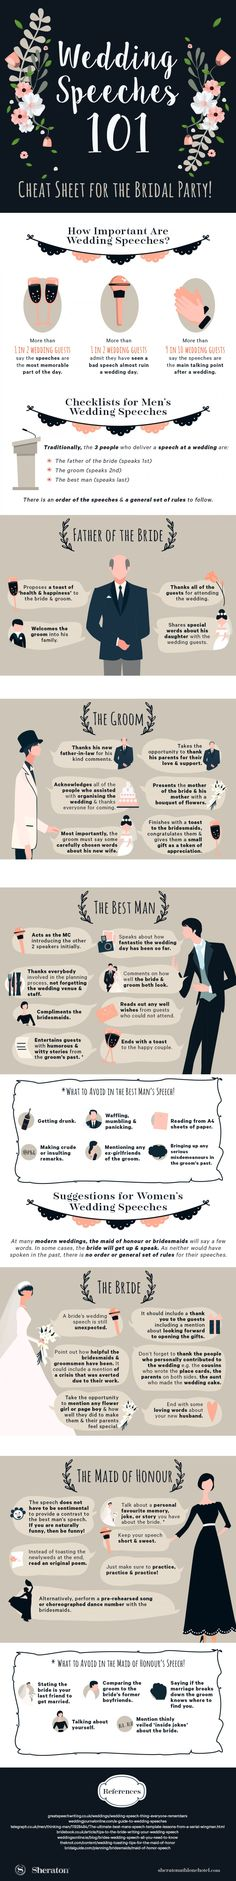 This infographic by Sheraton Athlone Hotel provide tips on how to write the perfect wedding speech, whether you're one half of the marrying couple, the best man, maid of honour or father of the bride. The best wedding speeches are light-hearted but still heartfelt, an ideal mixture of good spirits and unmistakable affection towards the bride and groom.